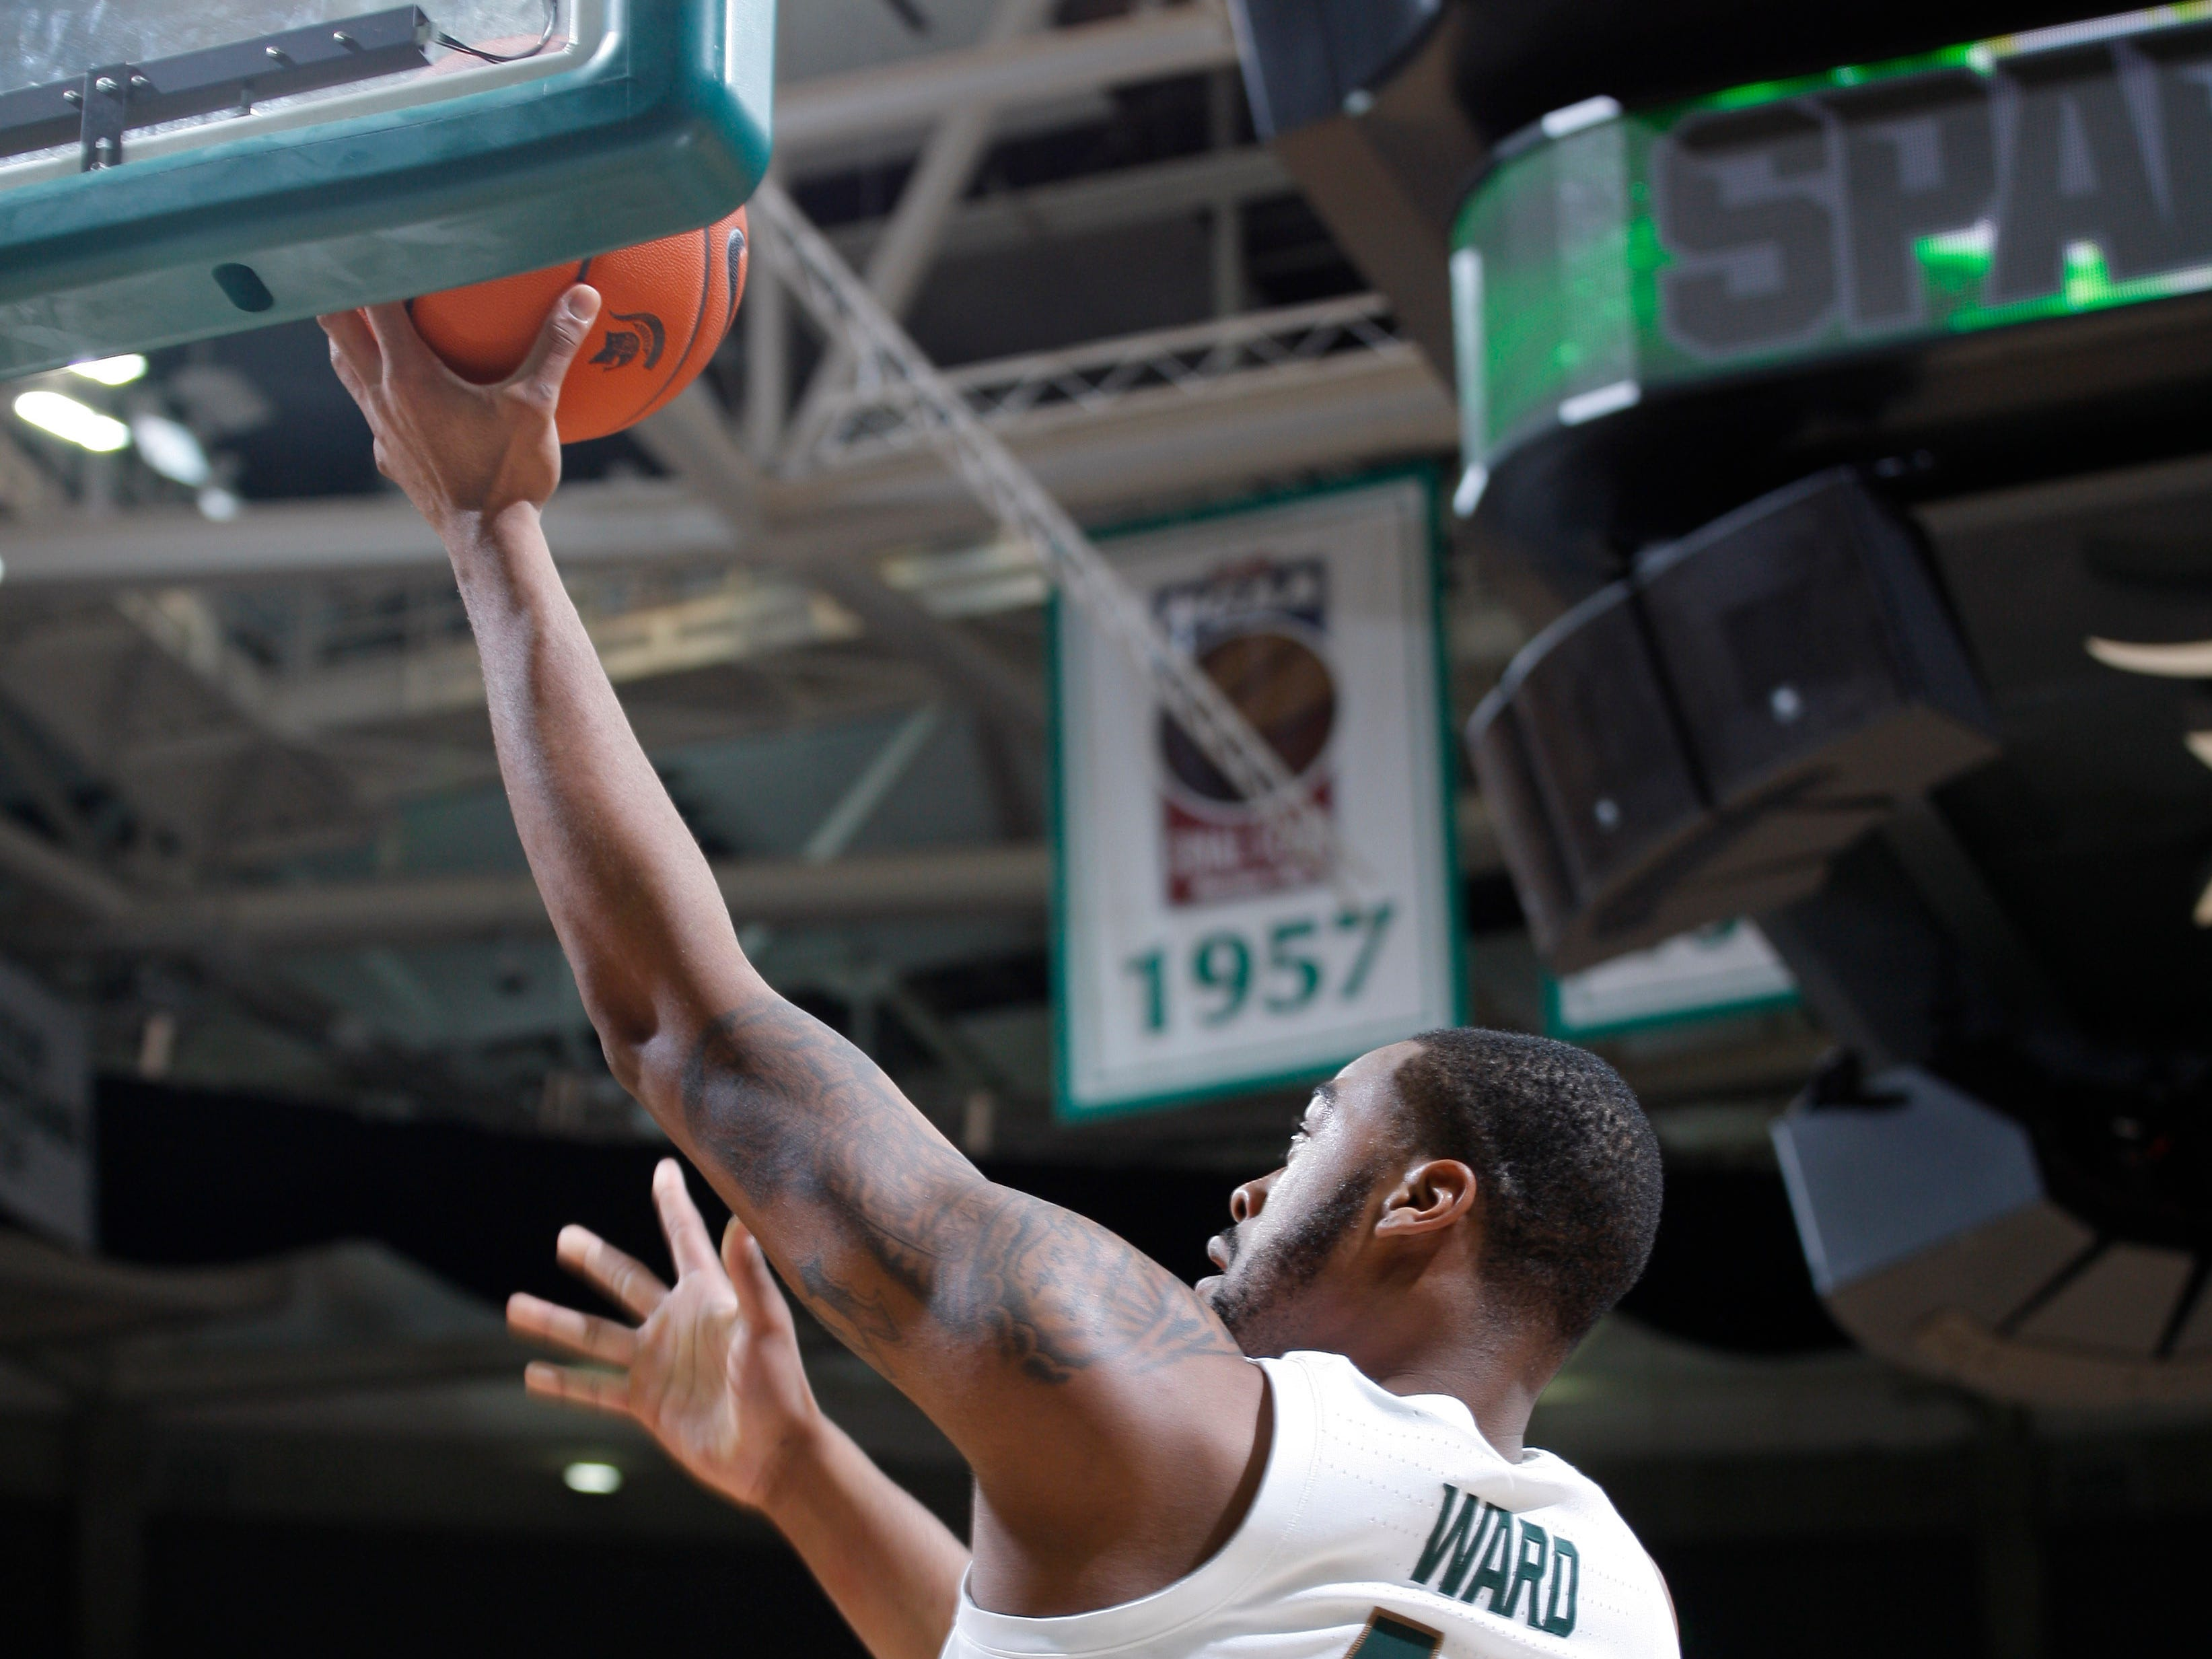 Michigan State's Nick Ward gets a layup against Northern Michigan, Tuesday, Oct. 30, 2018, in East Lansing, Mich.